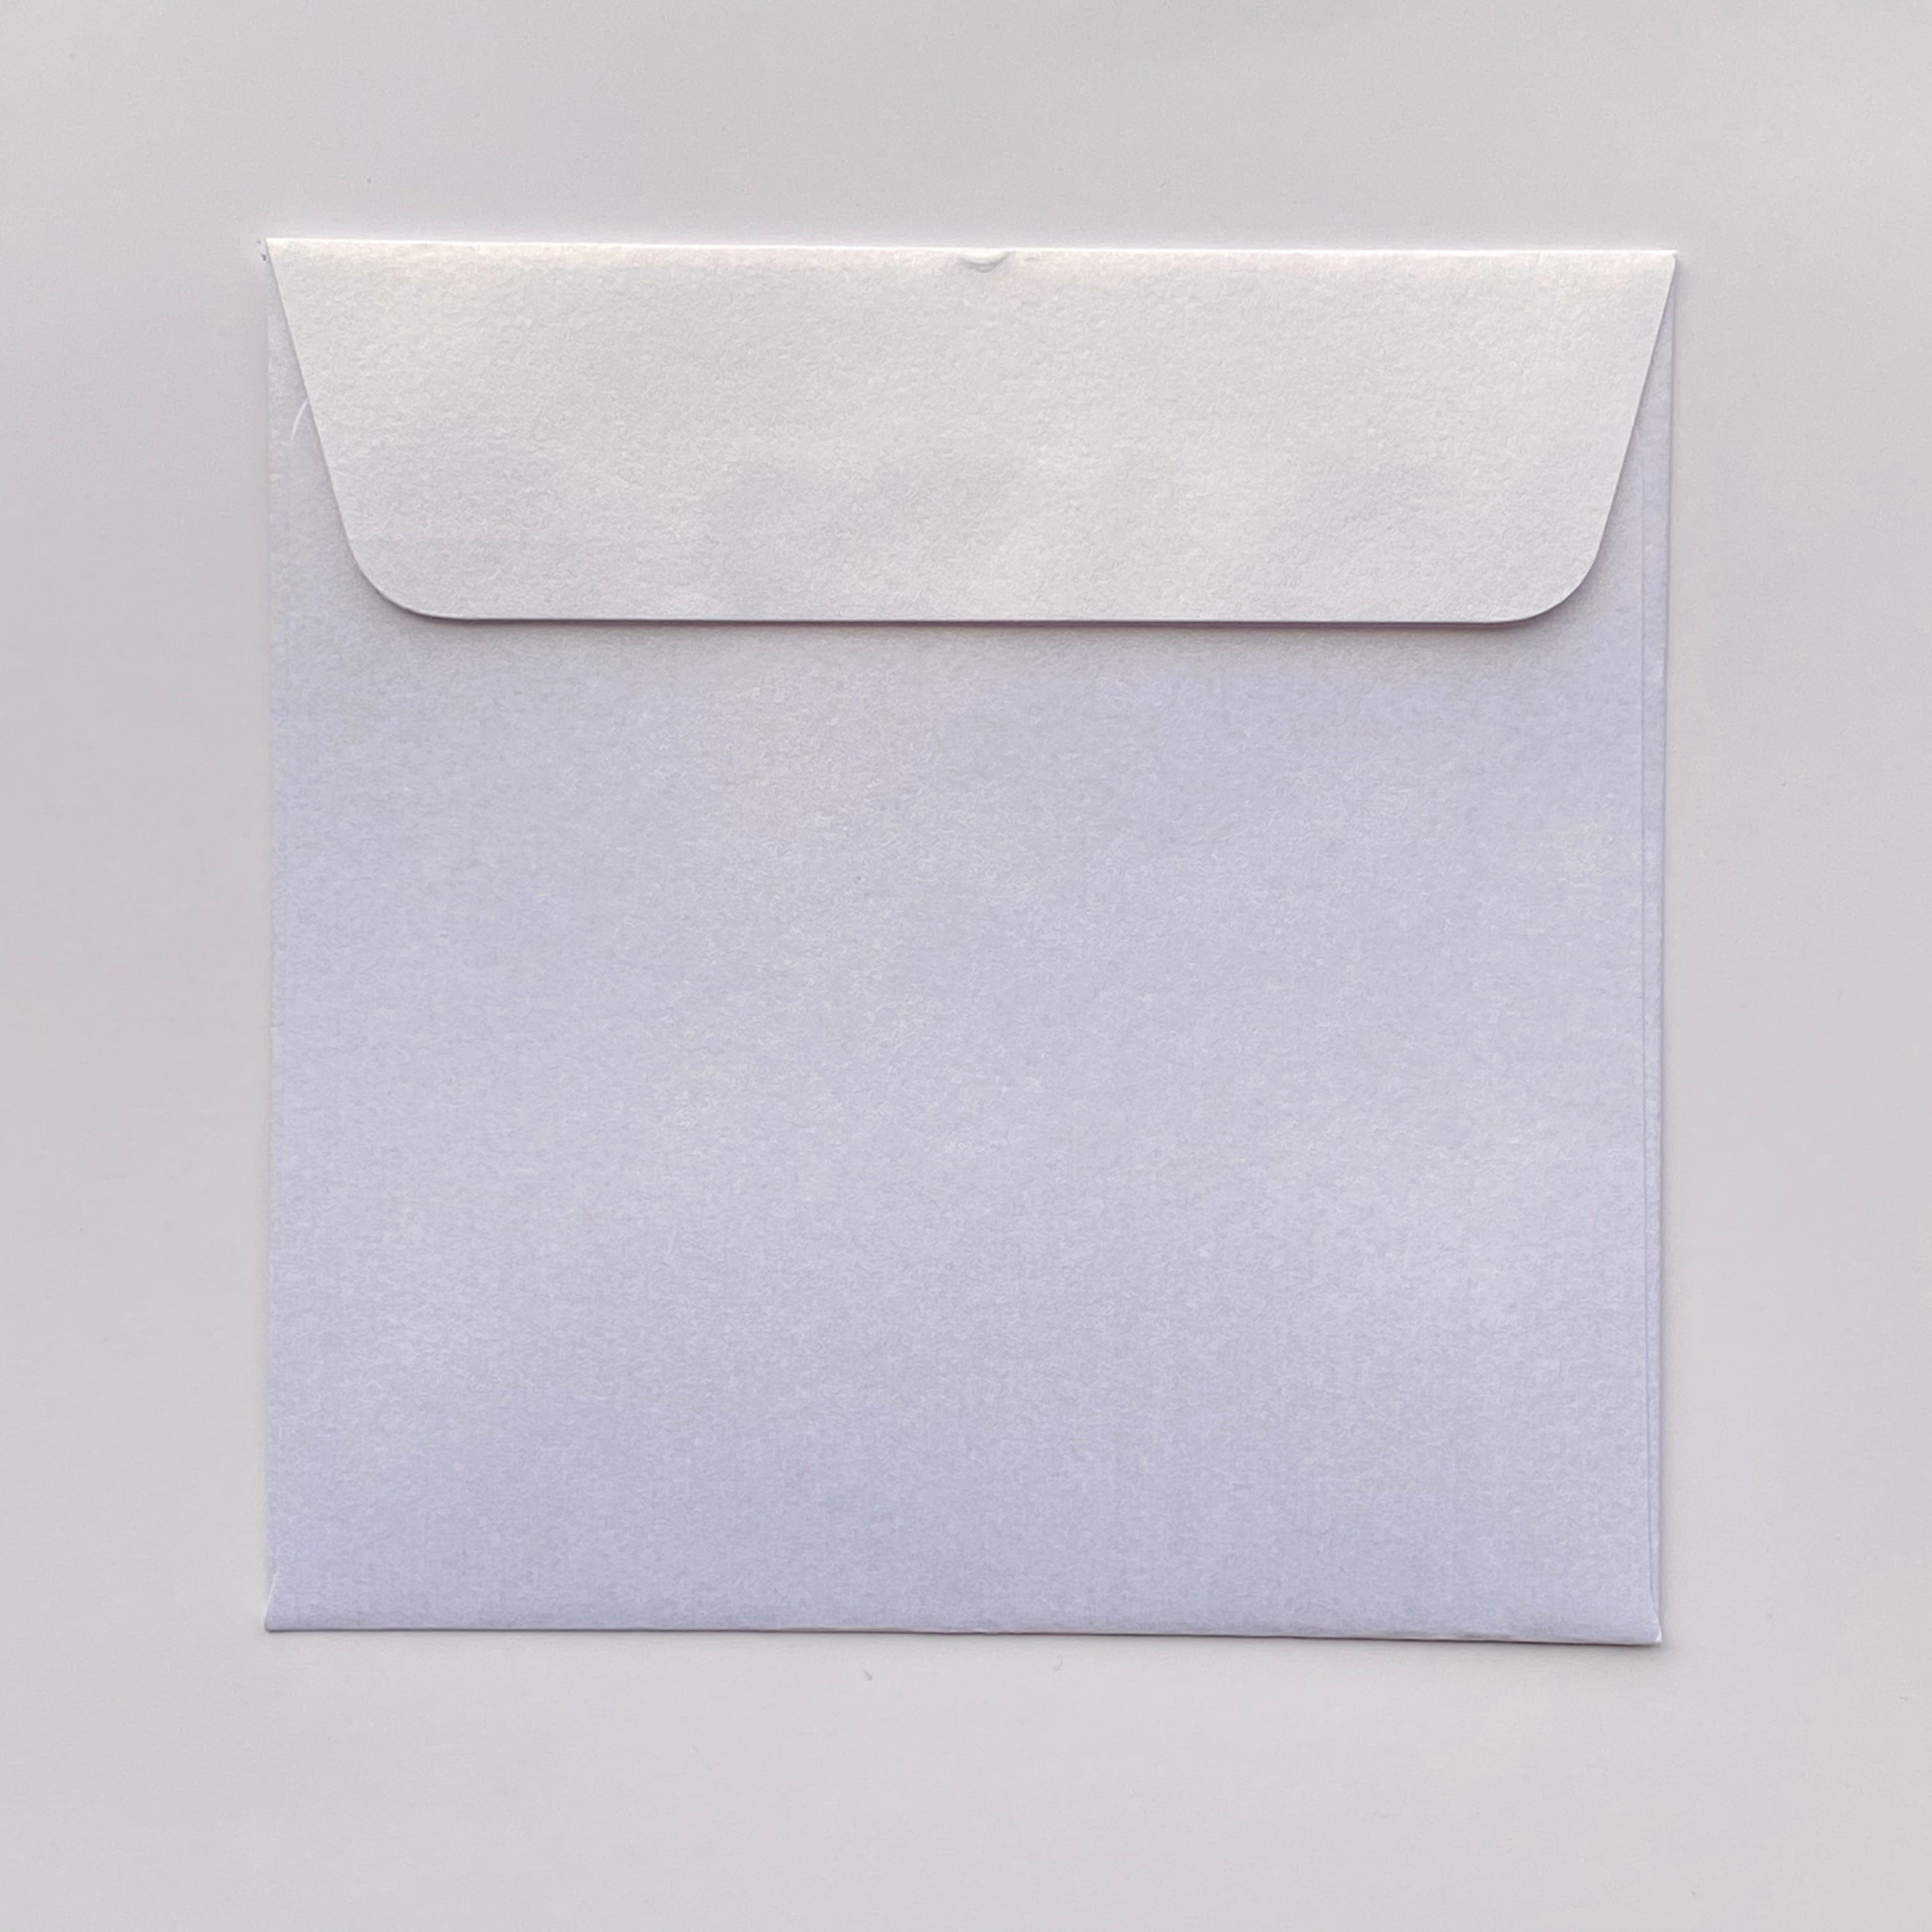 165mm square metallic envelopes